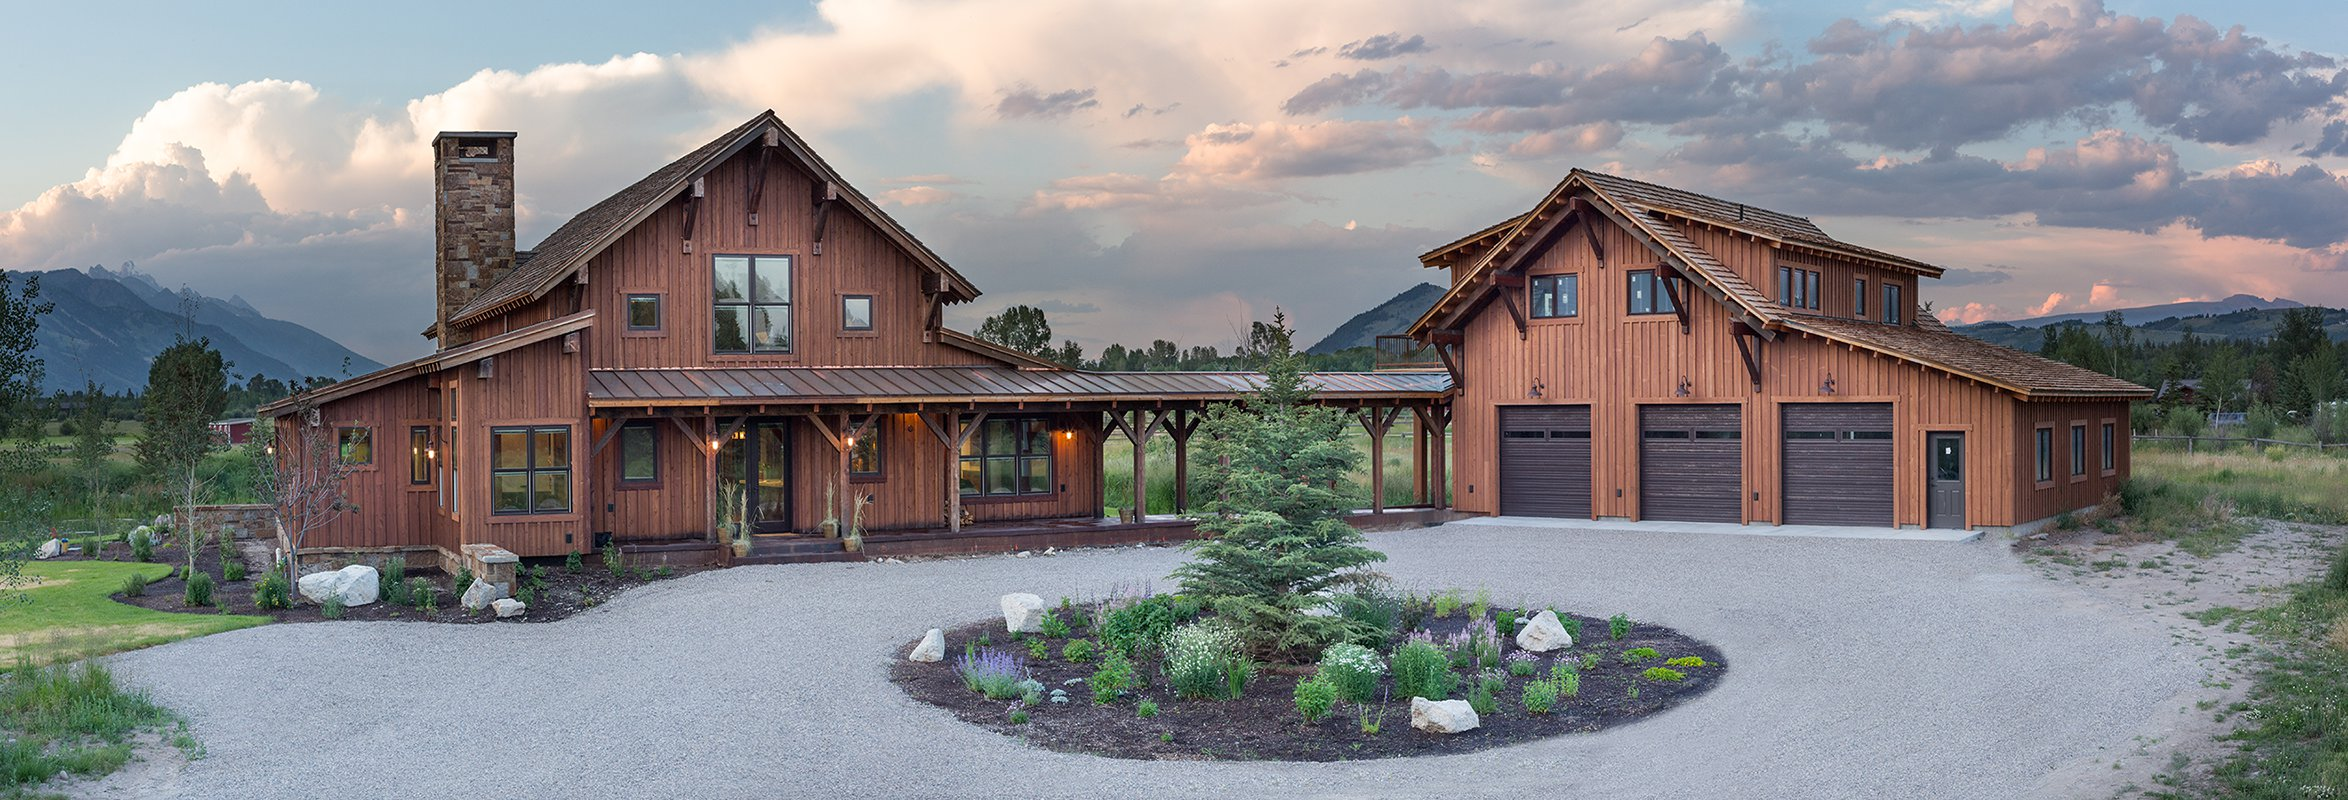 Custom home for sale in Jackson Hole Wyoming